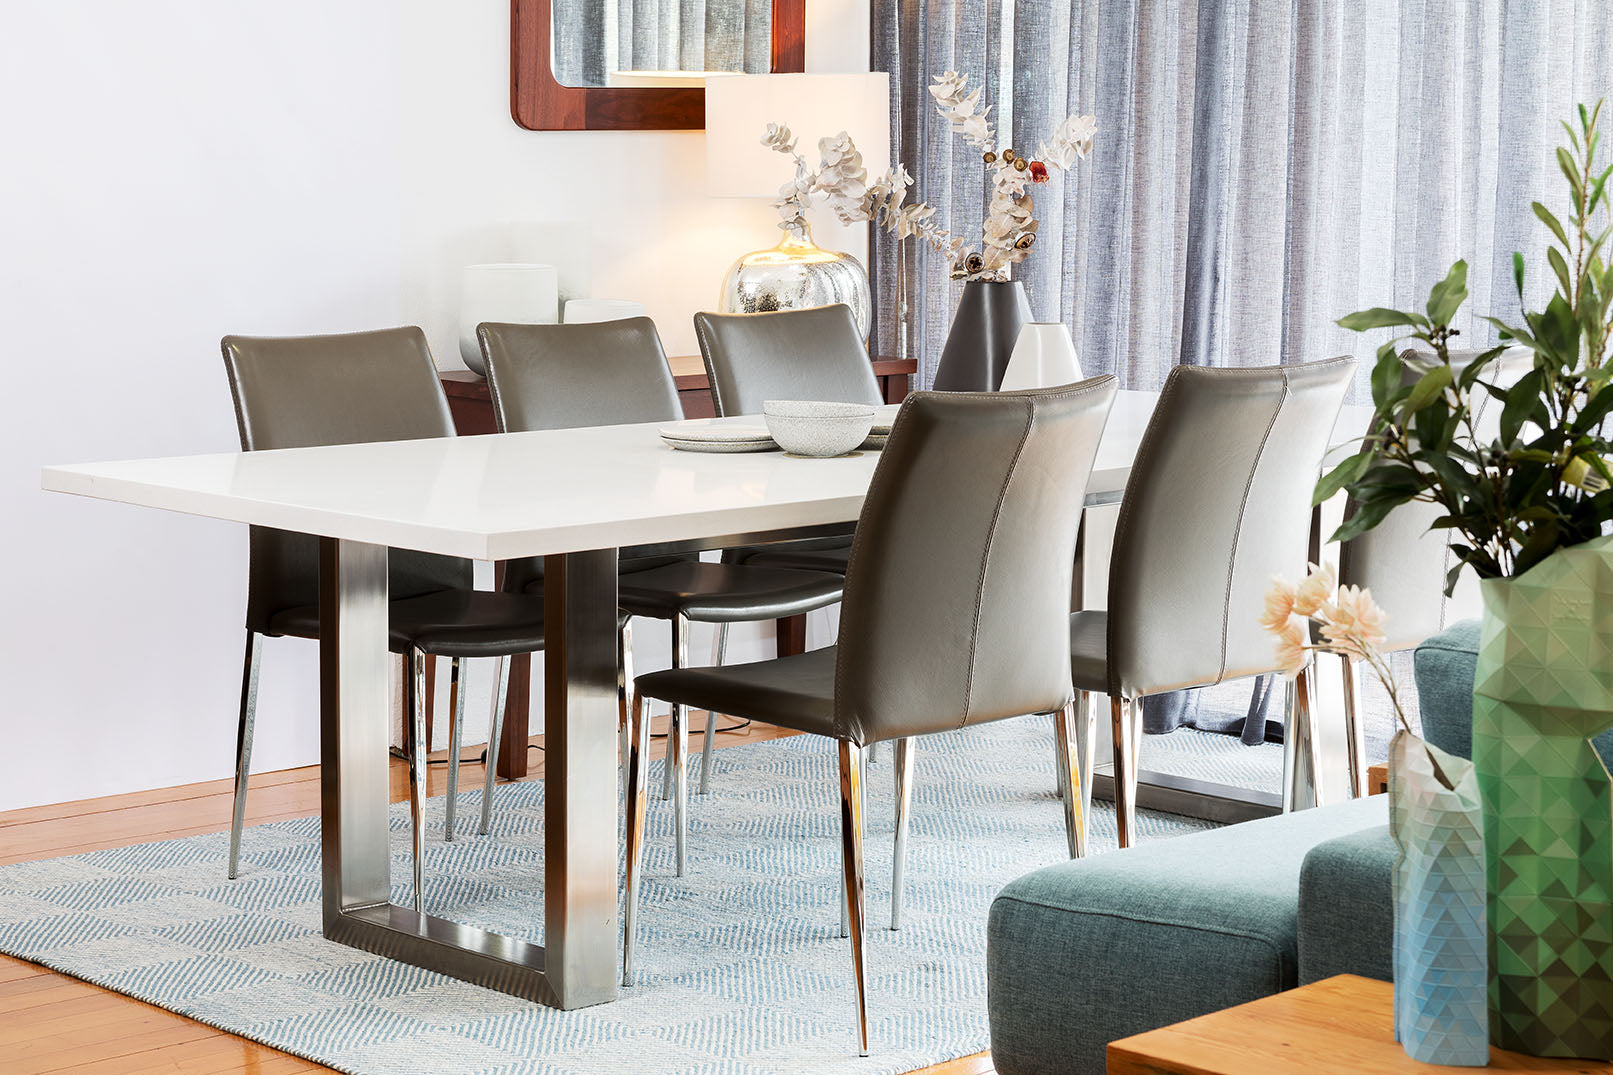 Malta Stone Top Dining Table With Stainless Steel Base